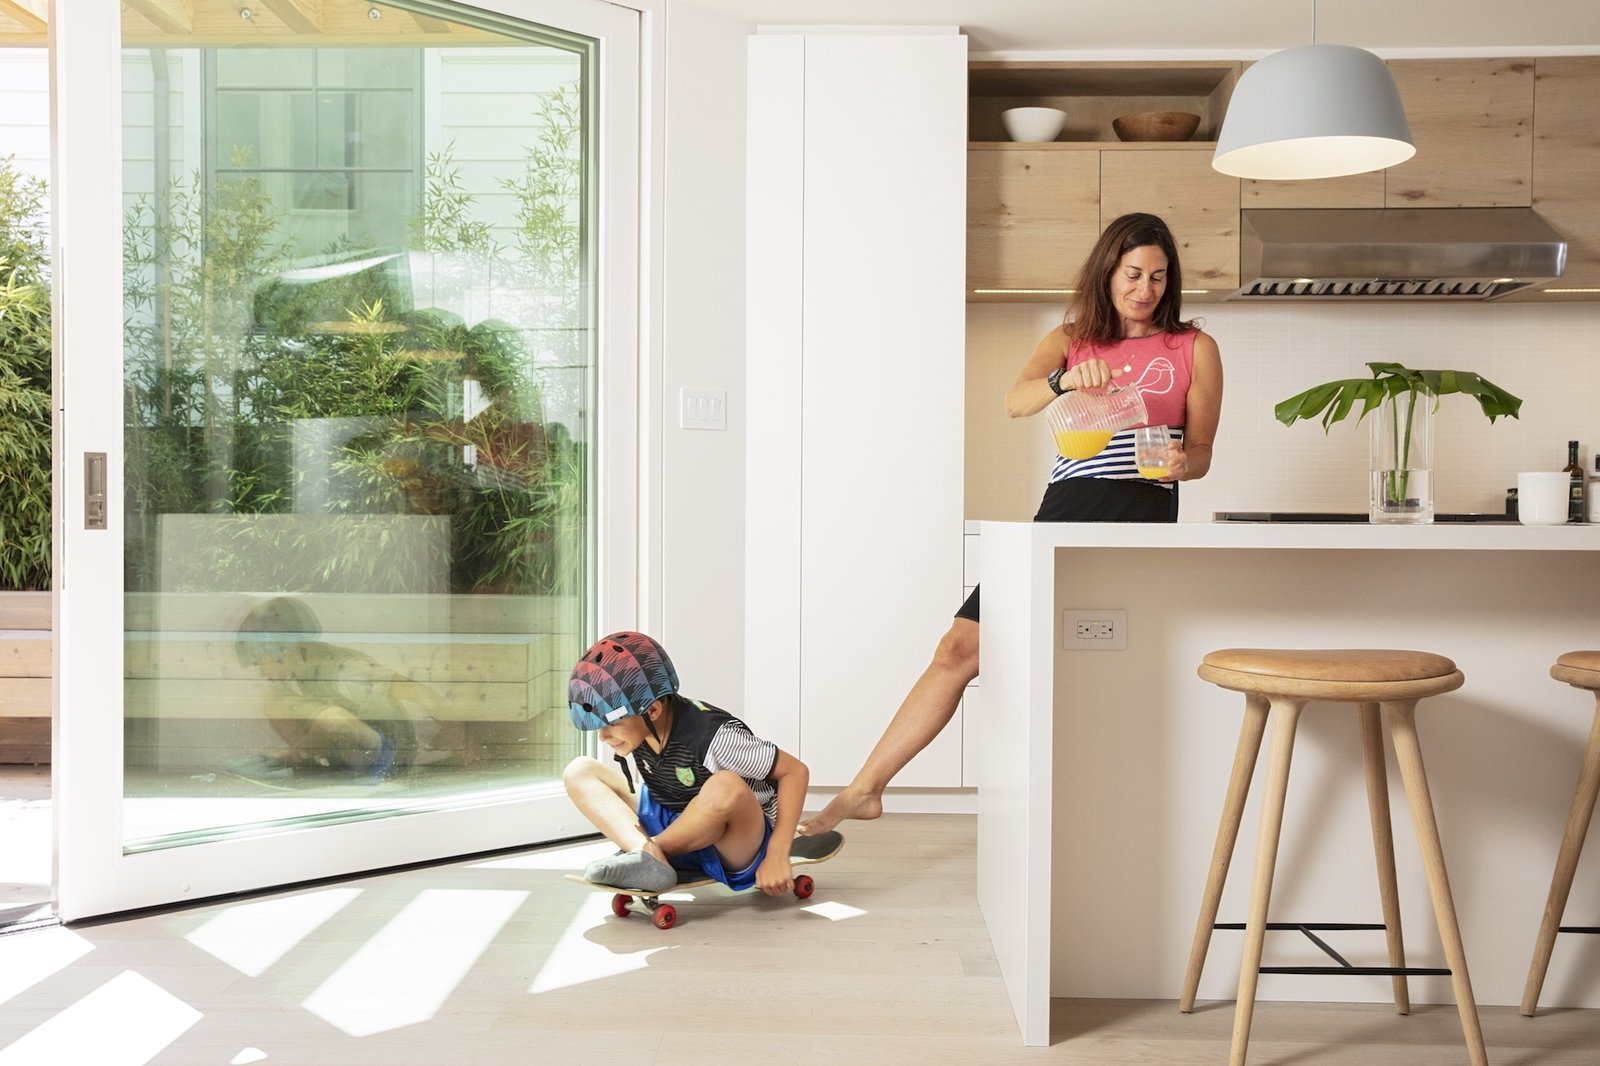 A woman with brown hair stands in a kitchen, pouring orange juice from a carafe into a glass. Her foot is out, holding on to the edge of a skateboard, on which a male child with a helmet sits, trying to scoot away. Behind them are the oak cabinets of the kitchen.